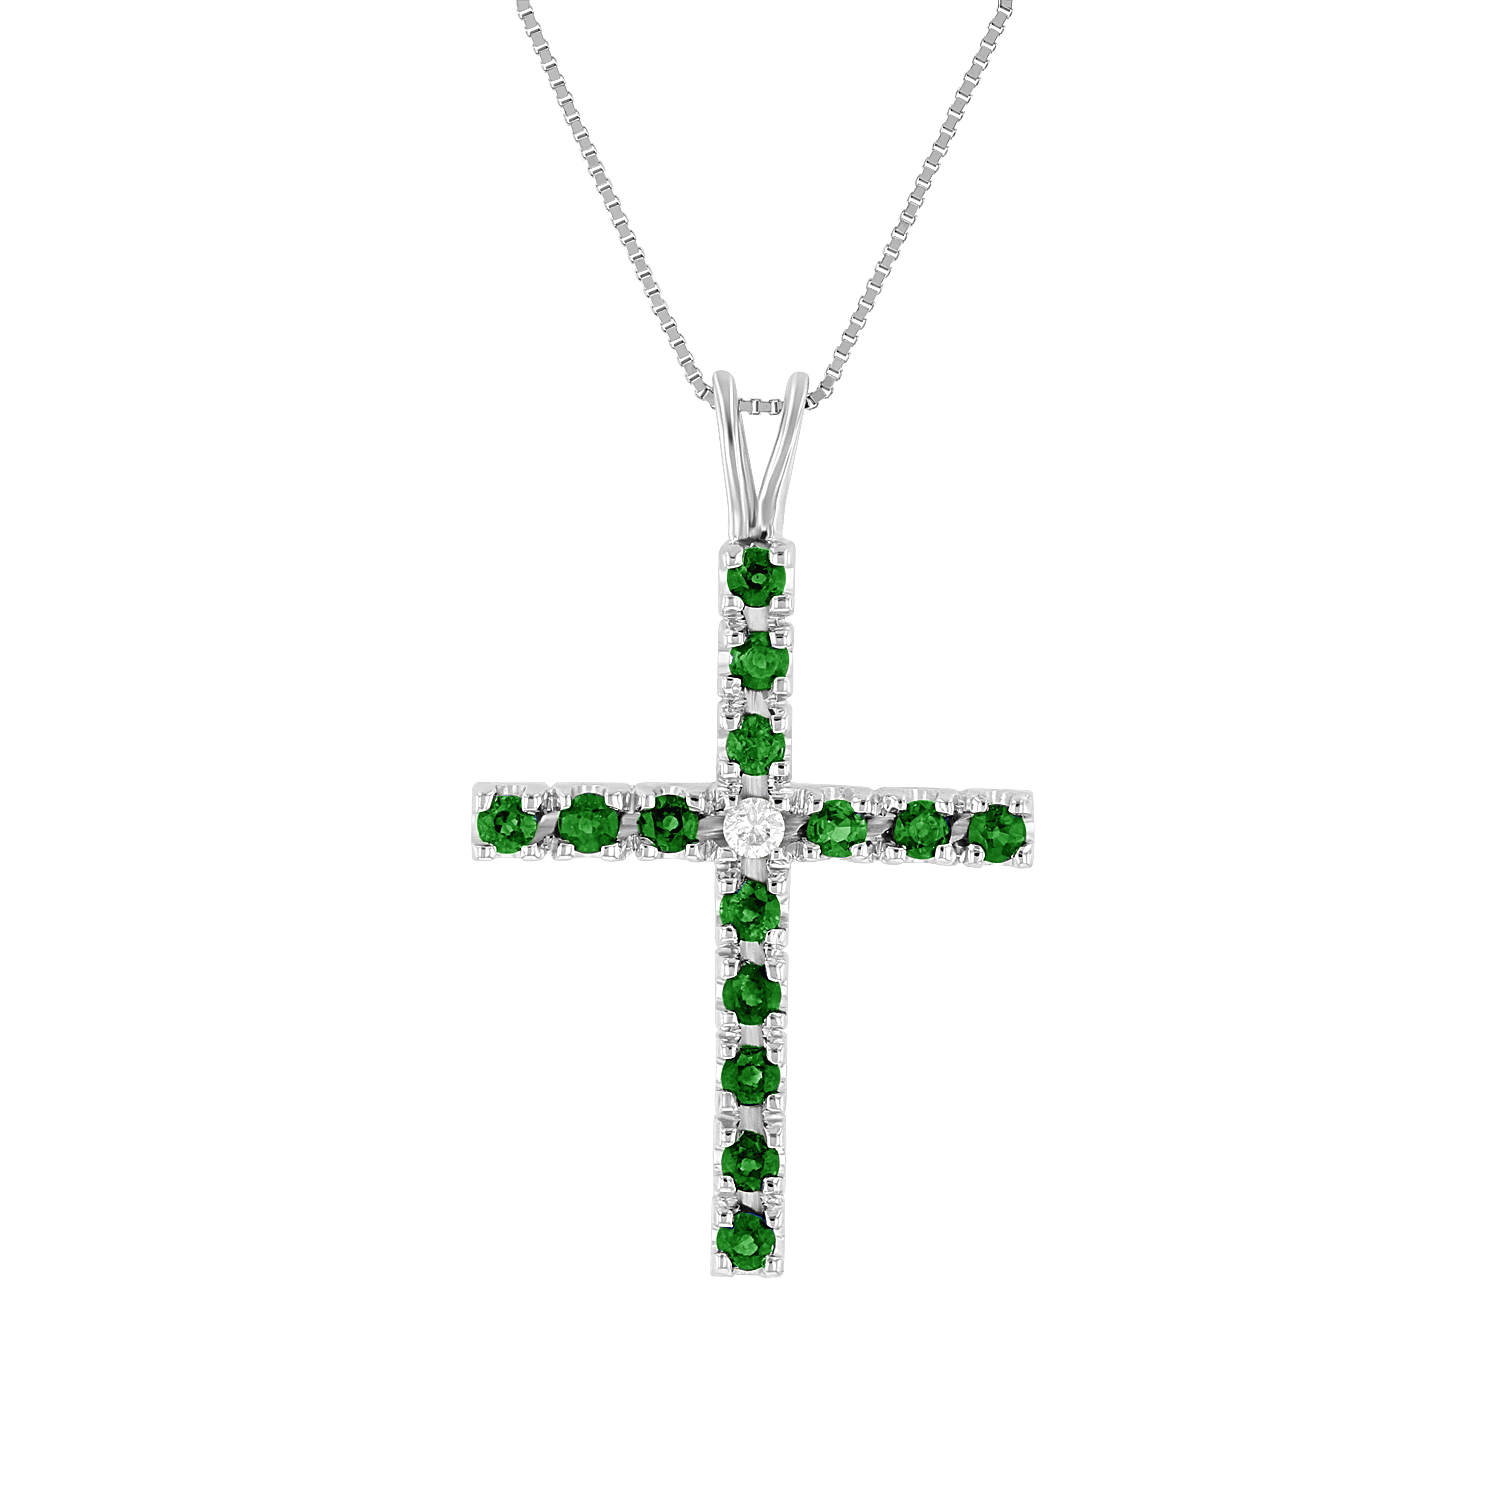 View 0.75ctw Diamond and Emerald Cross Pendant in 14k White Gold